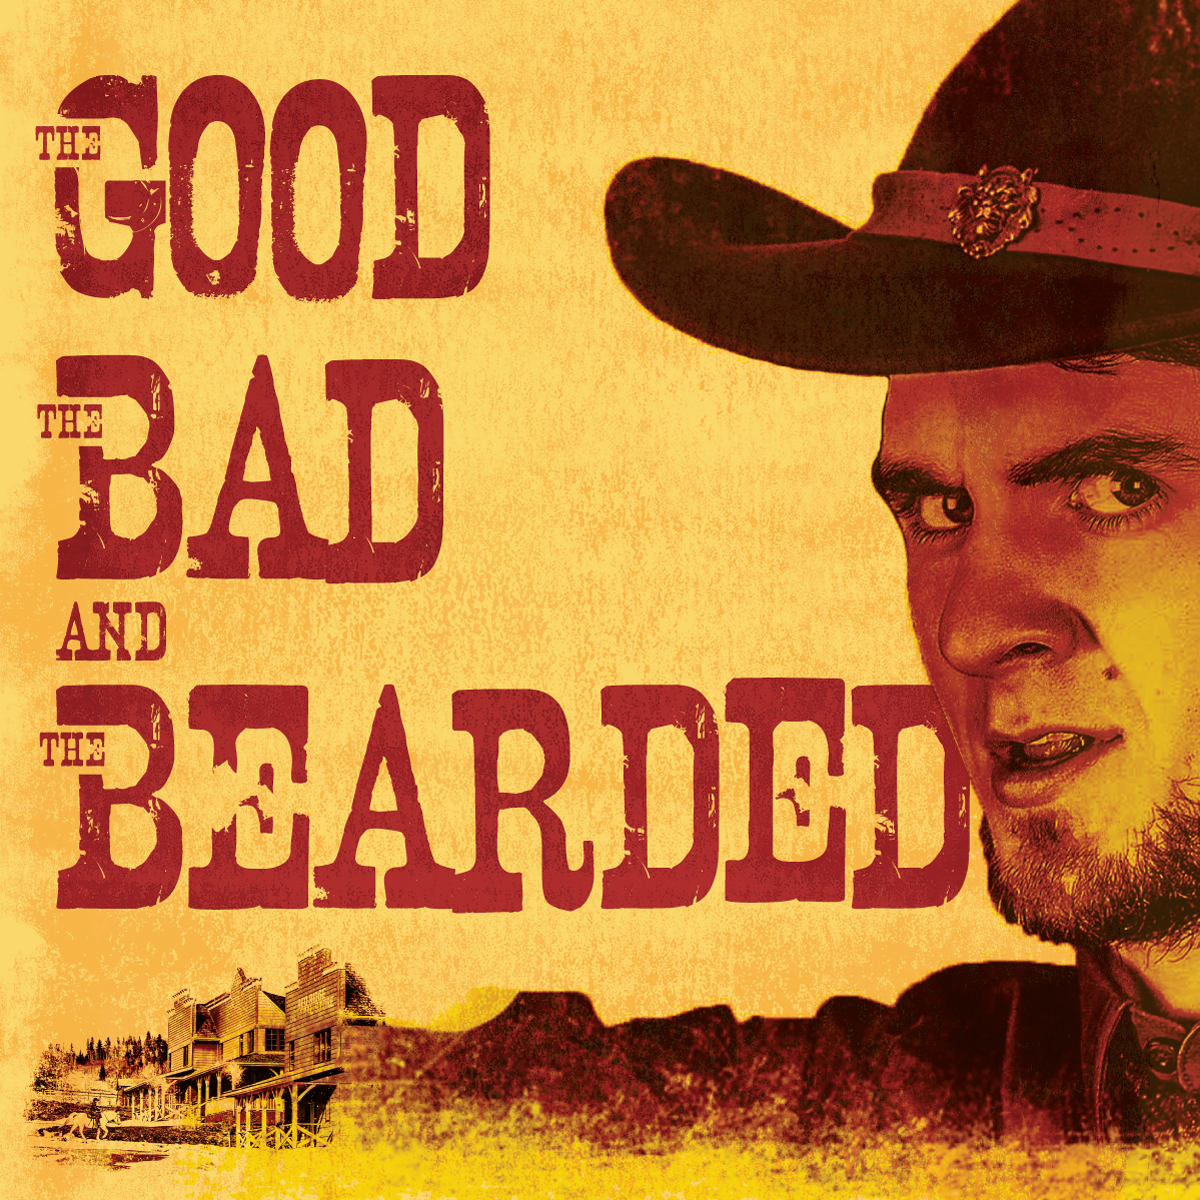 The Good, the Bad and the Bearded